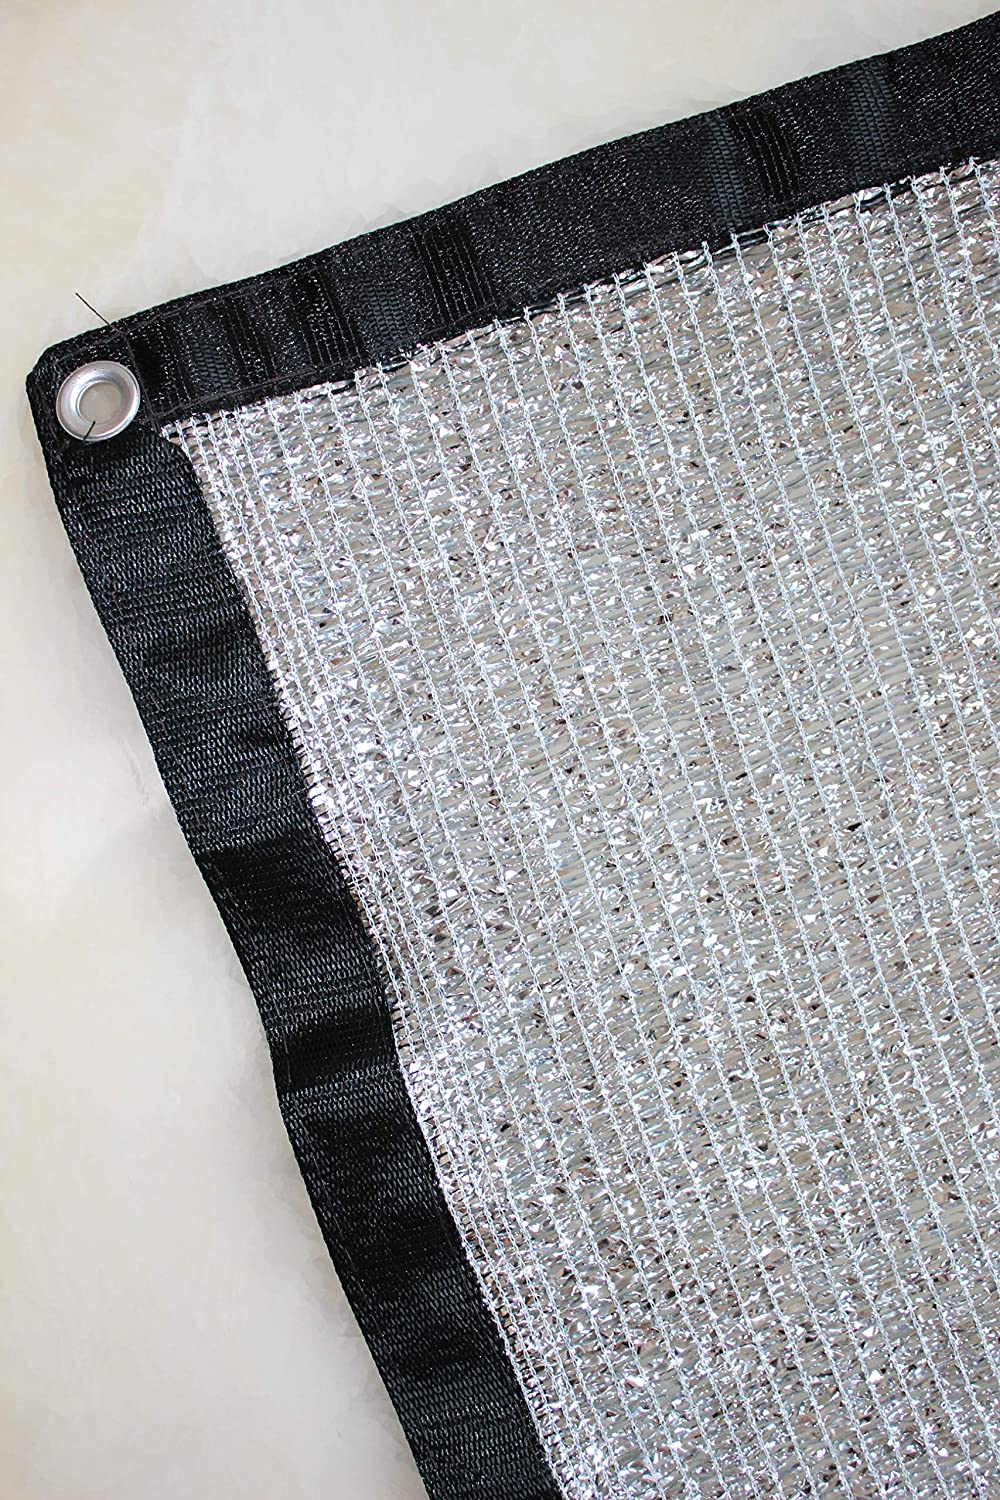 Jesasy 70/% 6.5 ft x 6 ft Aluminet Shade Cloth Panels with Grommets